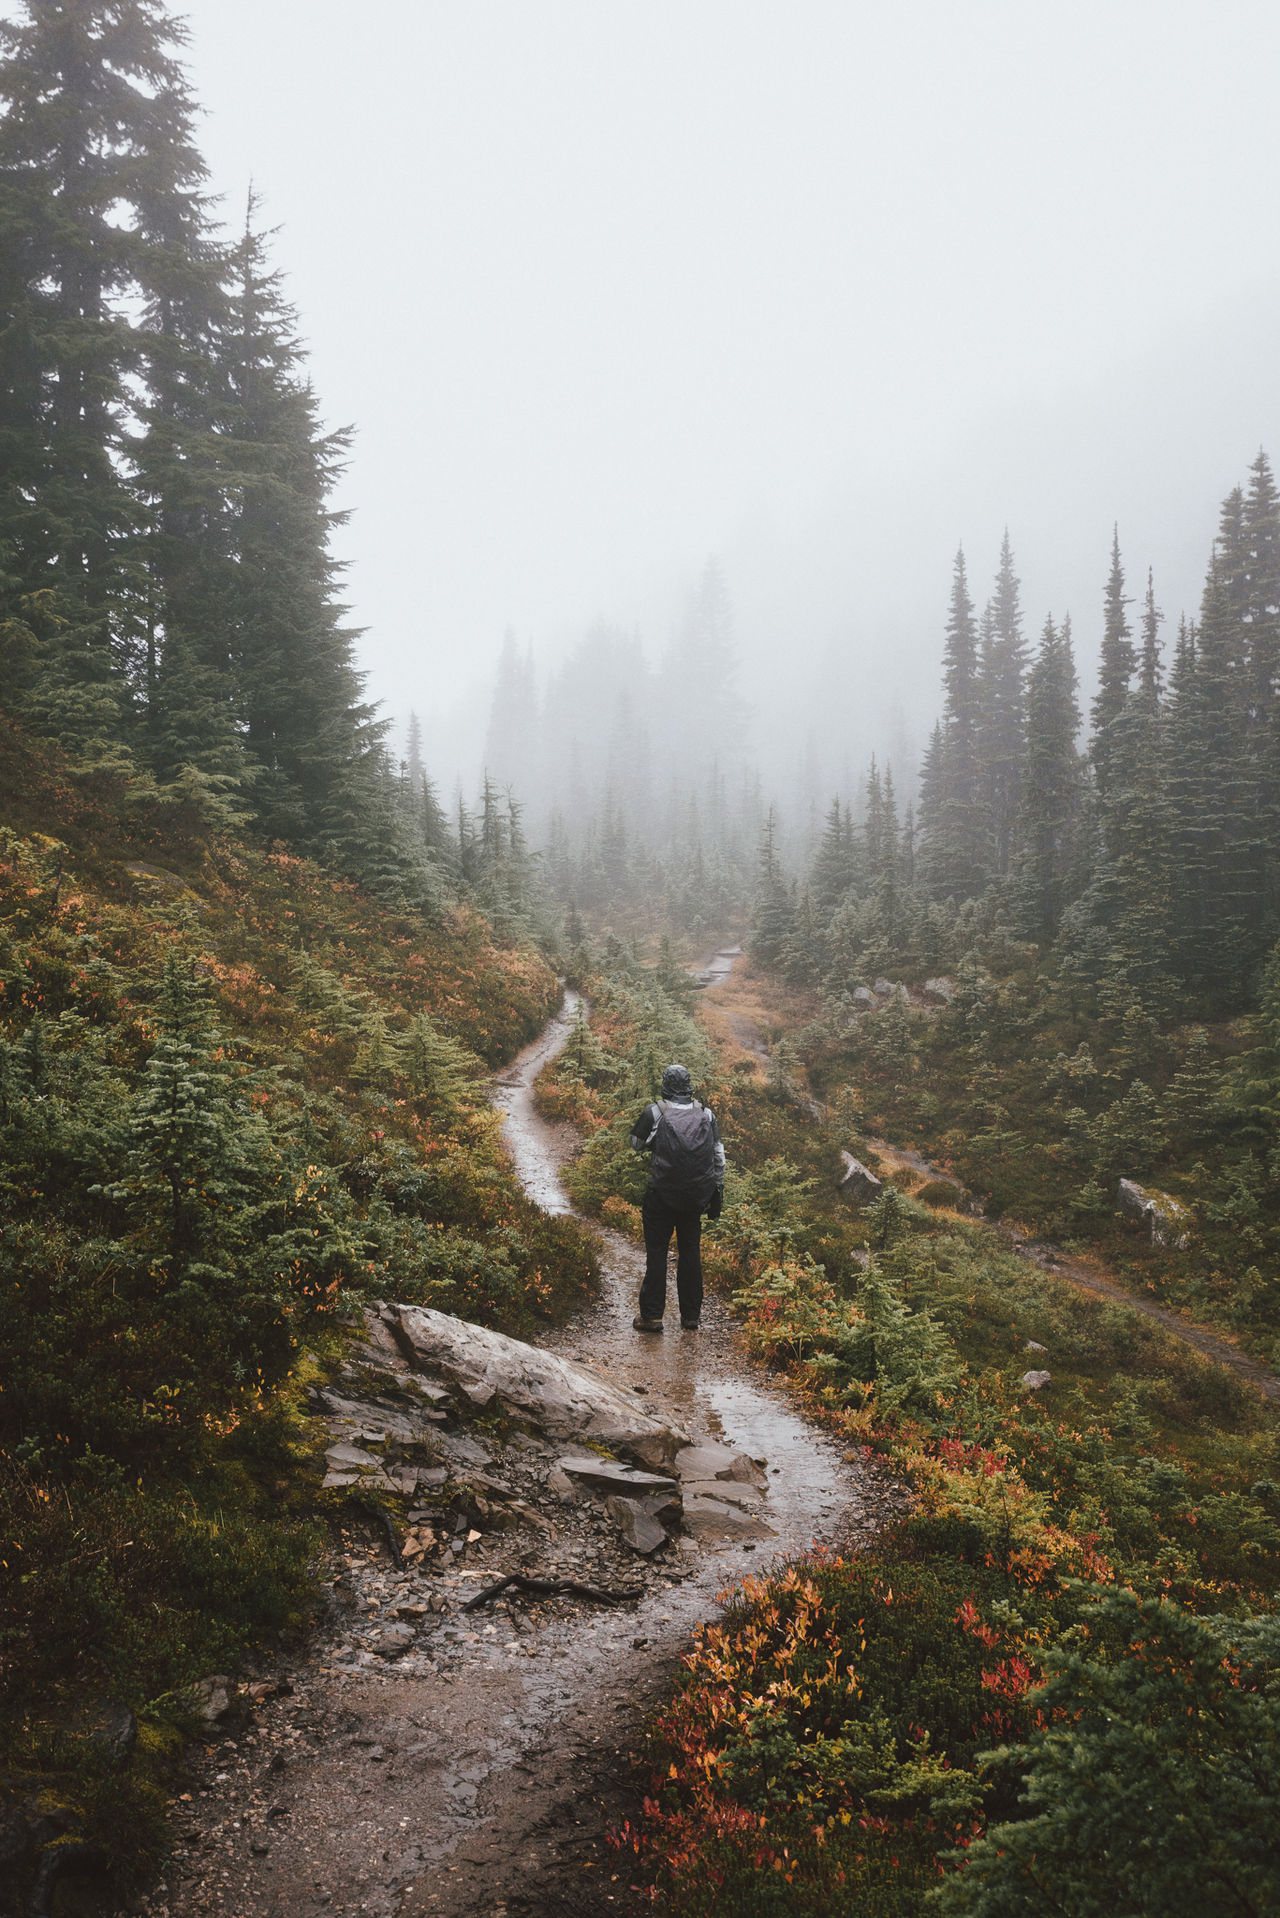 Been taking a lot of hazy hikes in alpine meadows recenty Adventure Alpine Hiking Beauty In Nature Cold Temperature Fog Forest Hiking Landscape Nature Nature Outdoors People Scenics Washington State